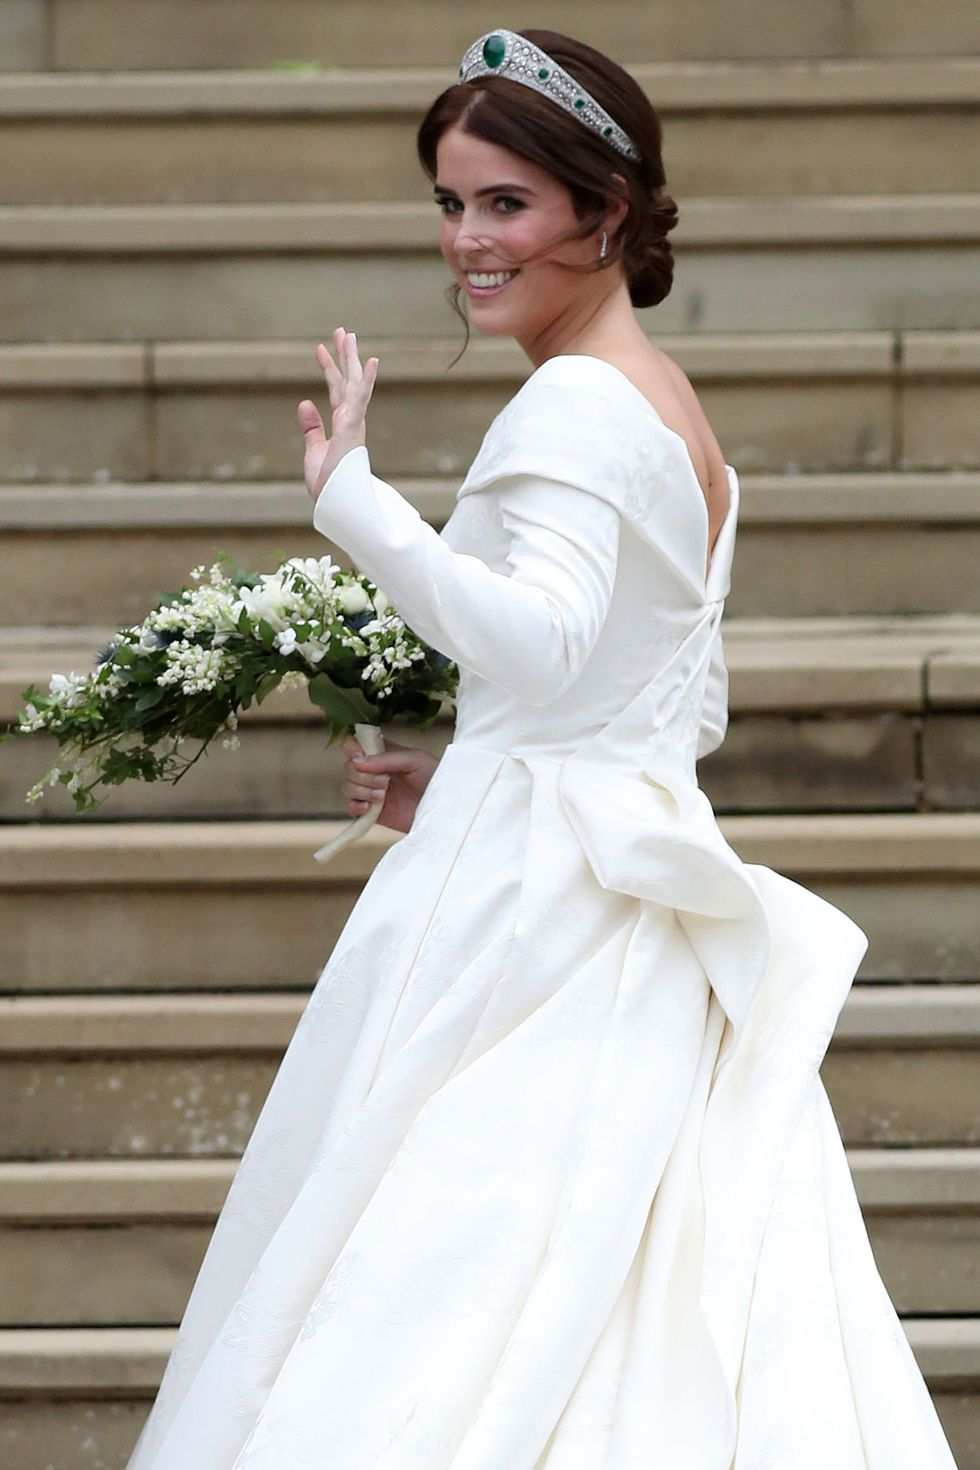 hbz-all-the-photos-princess-eugenie-wedding-gettyimages-1051951192.jpg